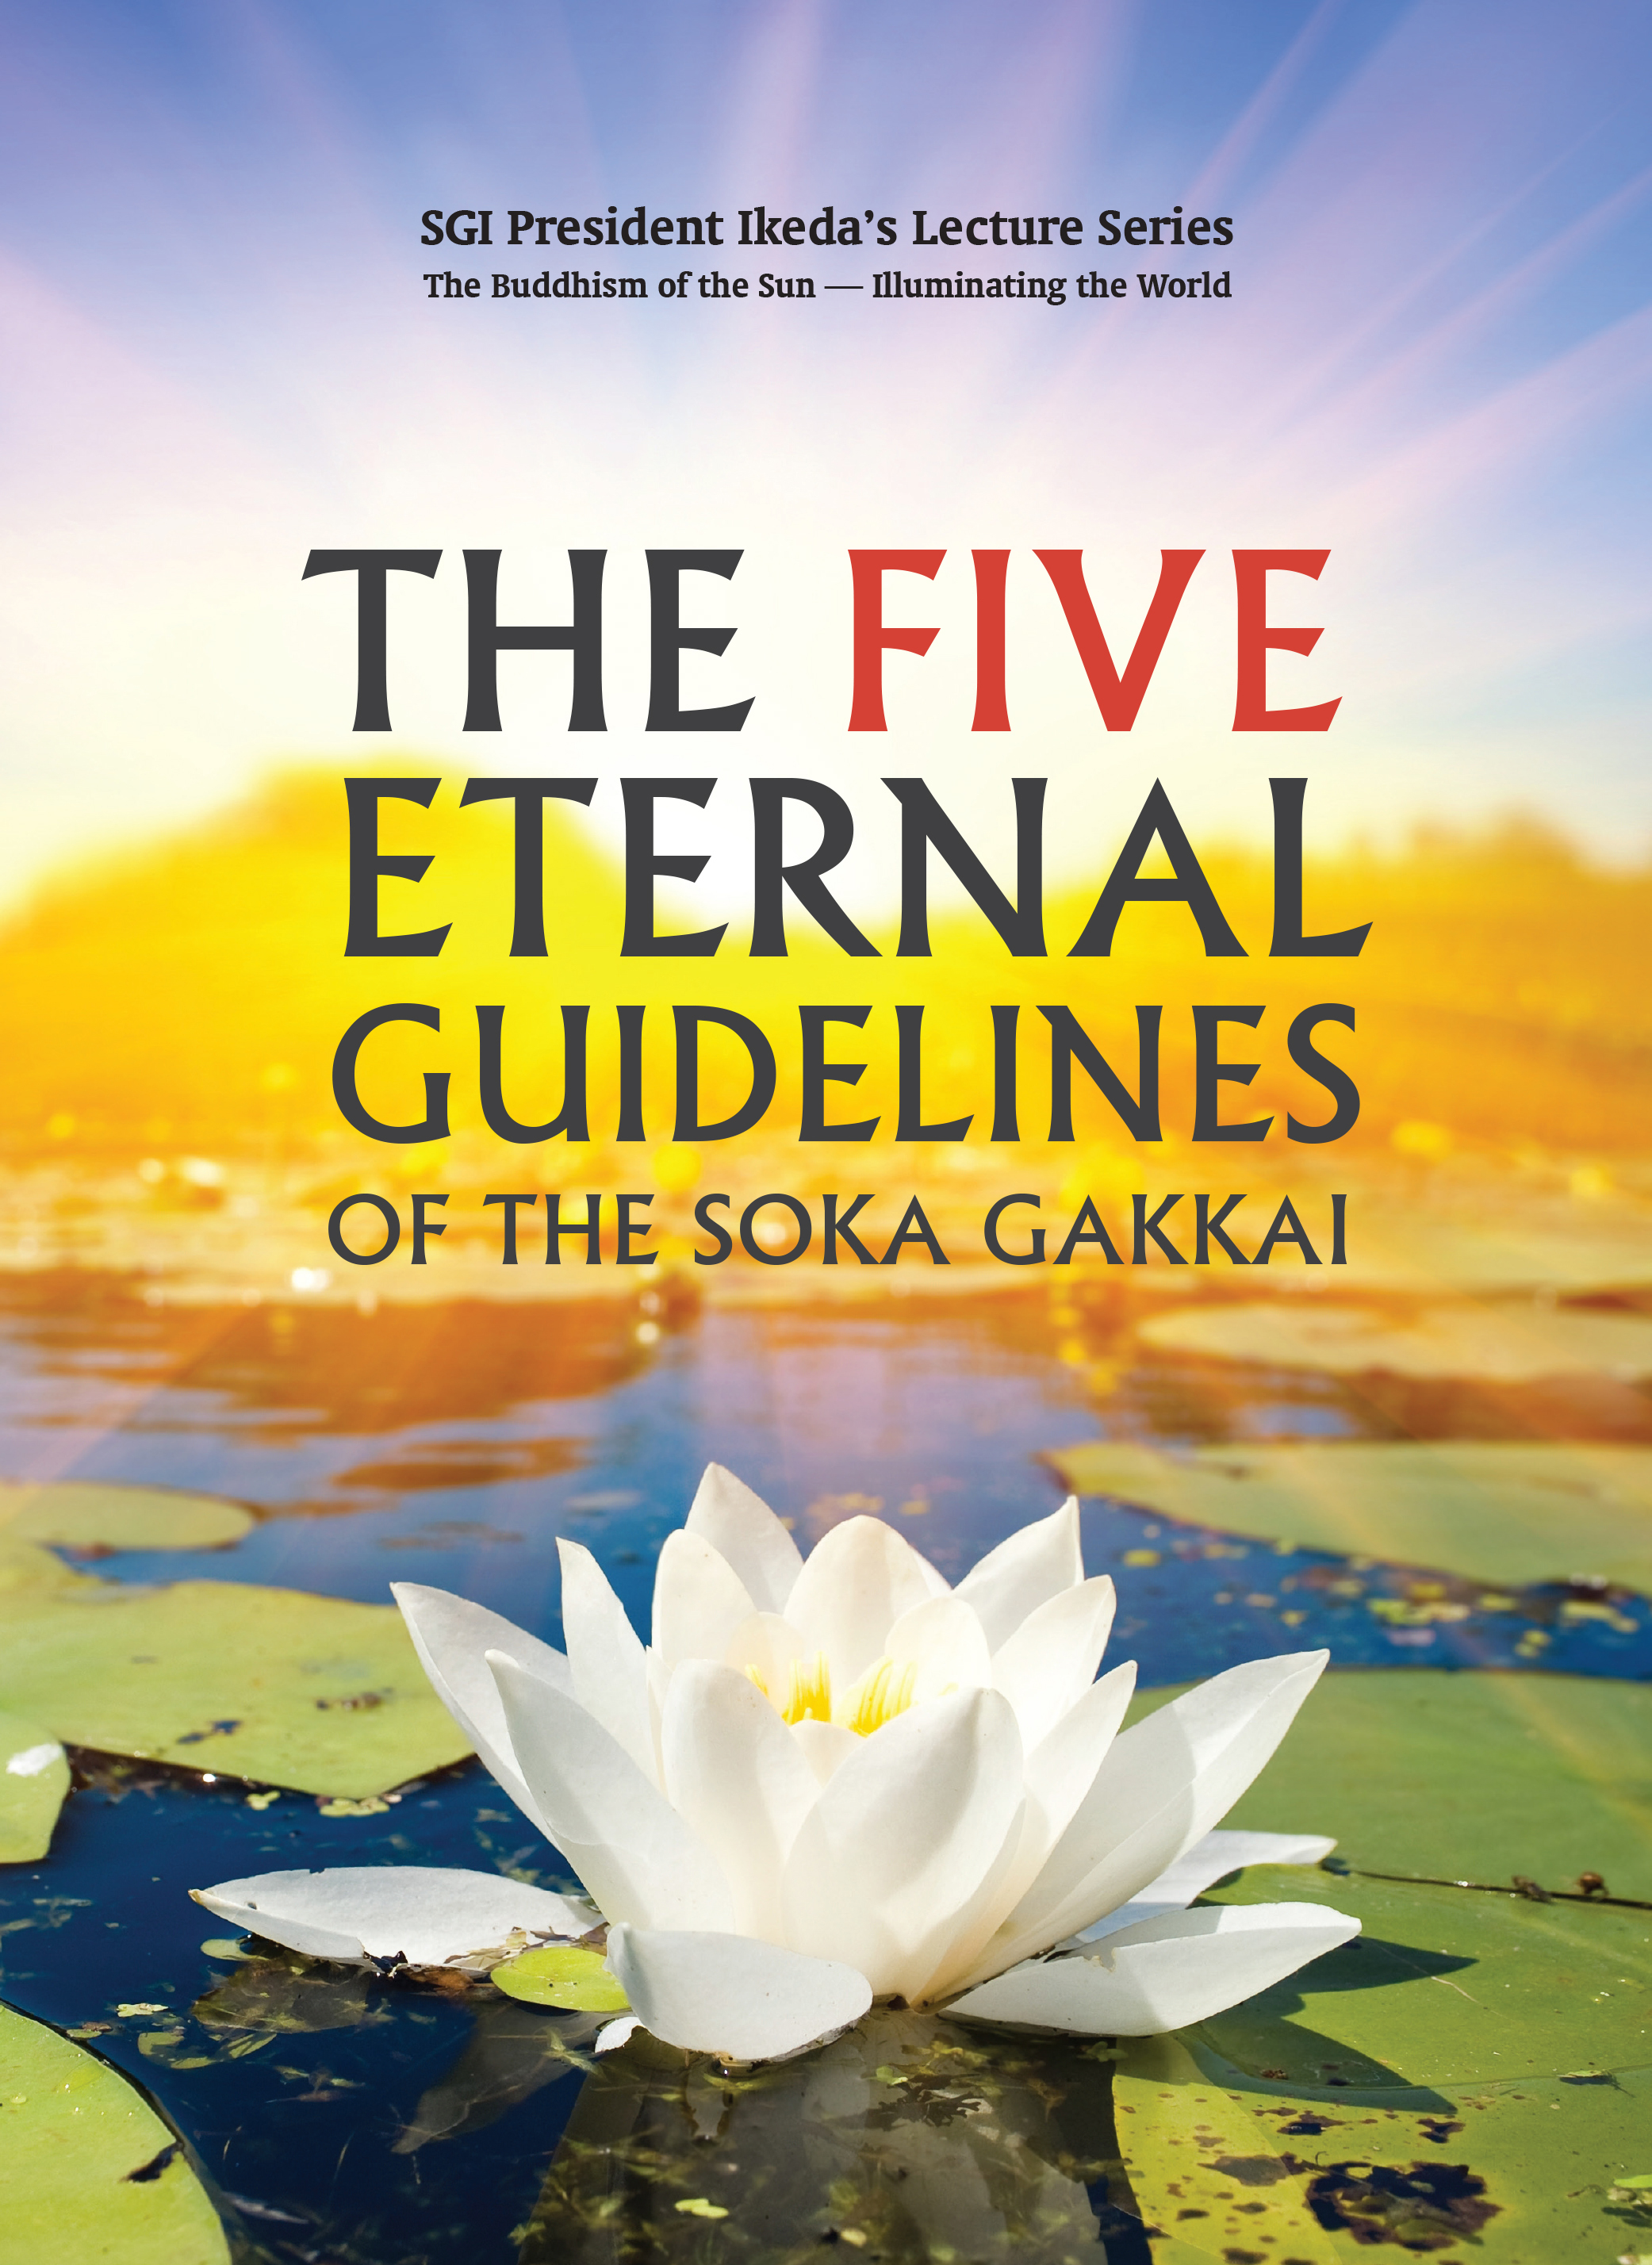 The Five Eternal Guidelines of the Soka Gakkai